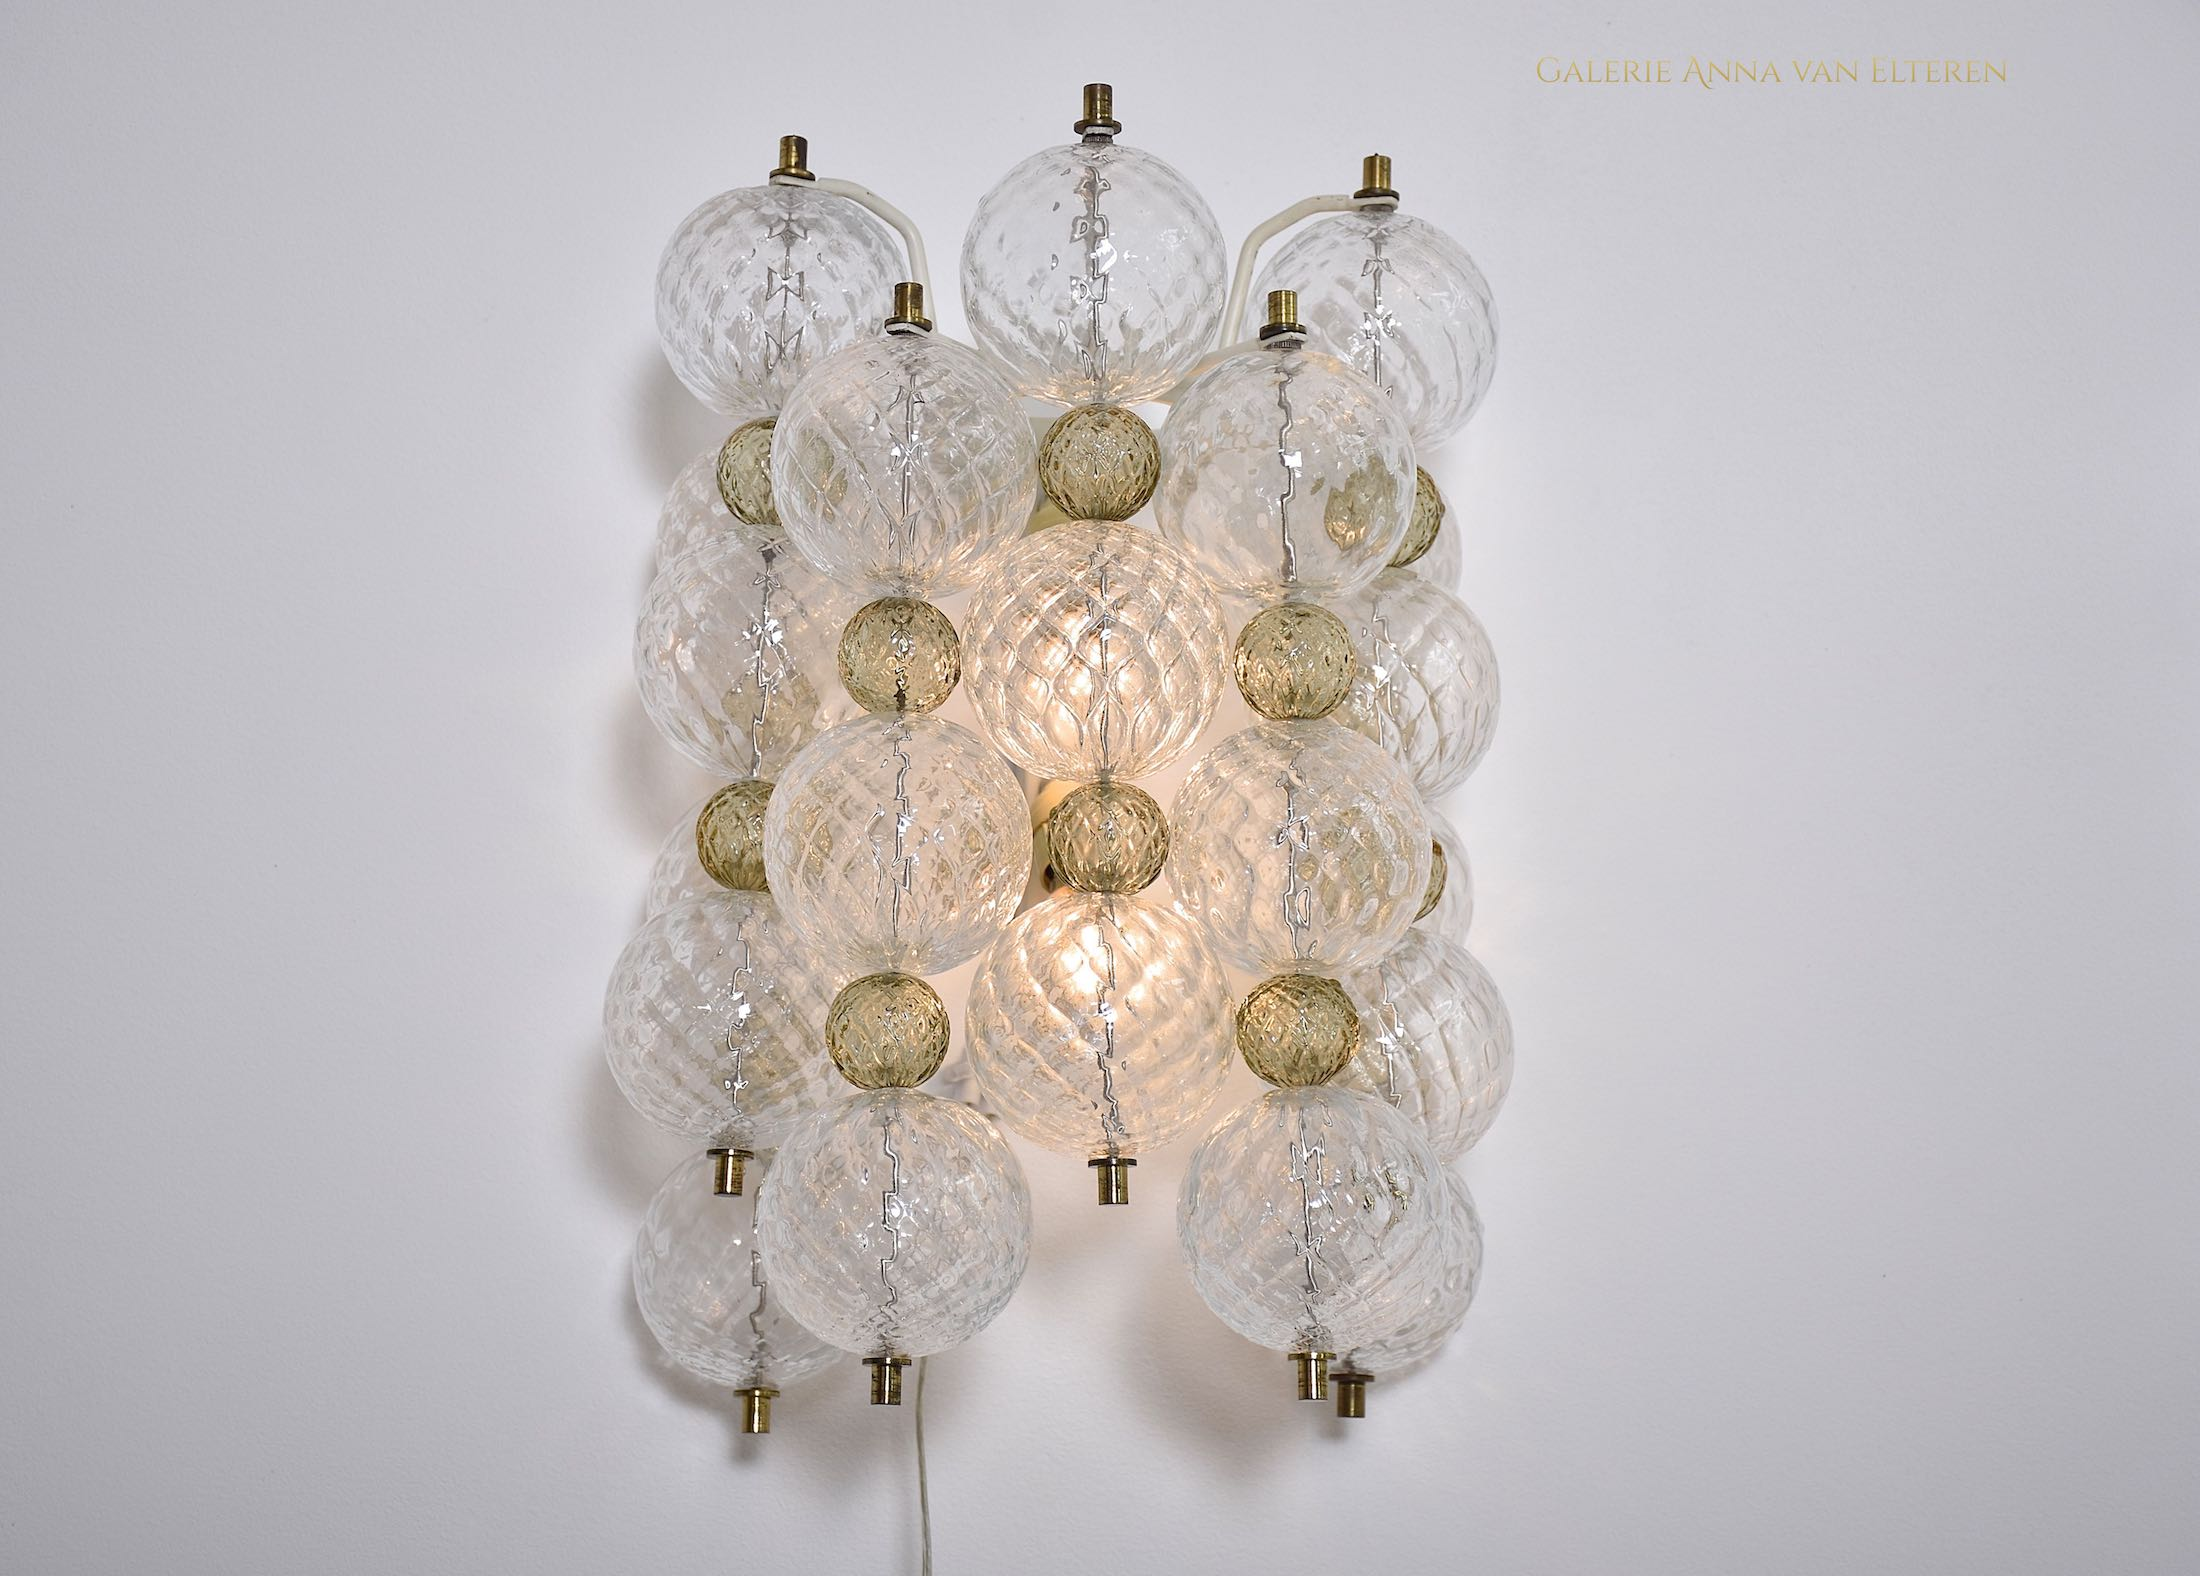 Set of Venini Murano chandelier & wall sconces 'Balloton'